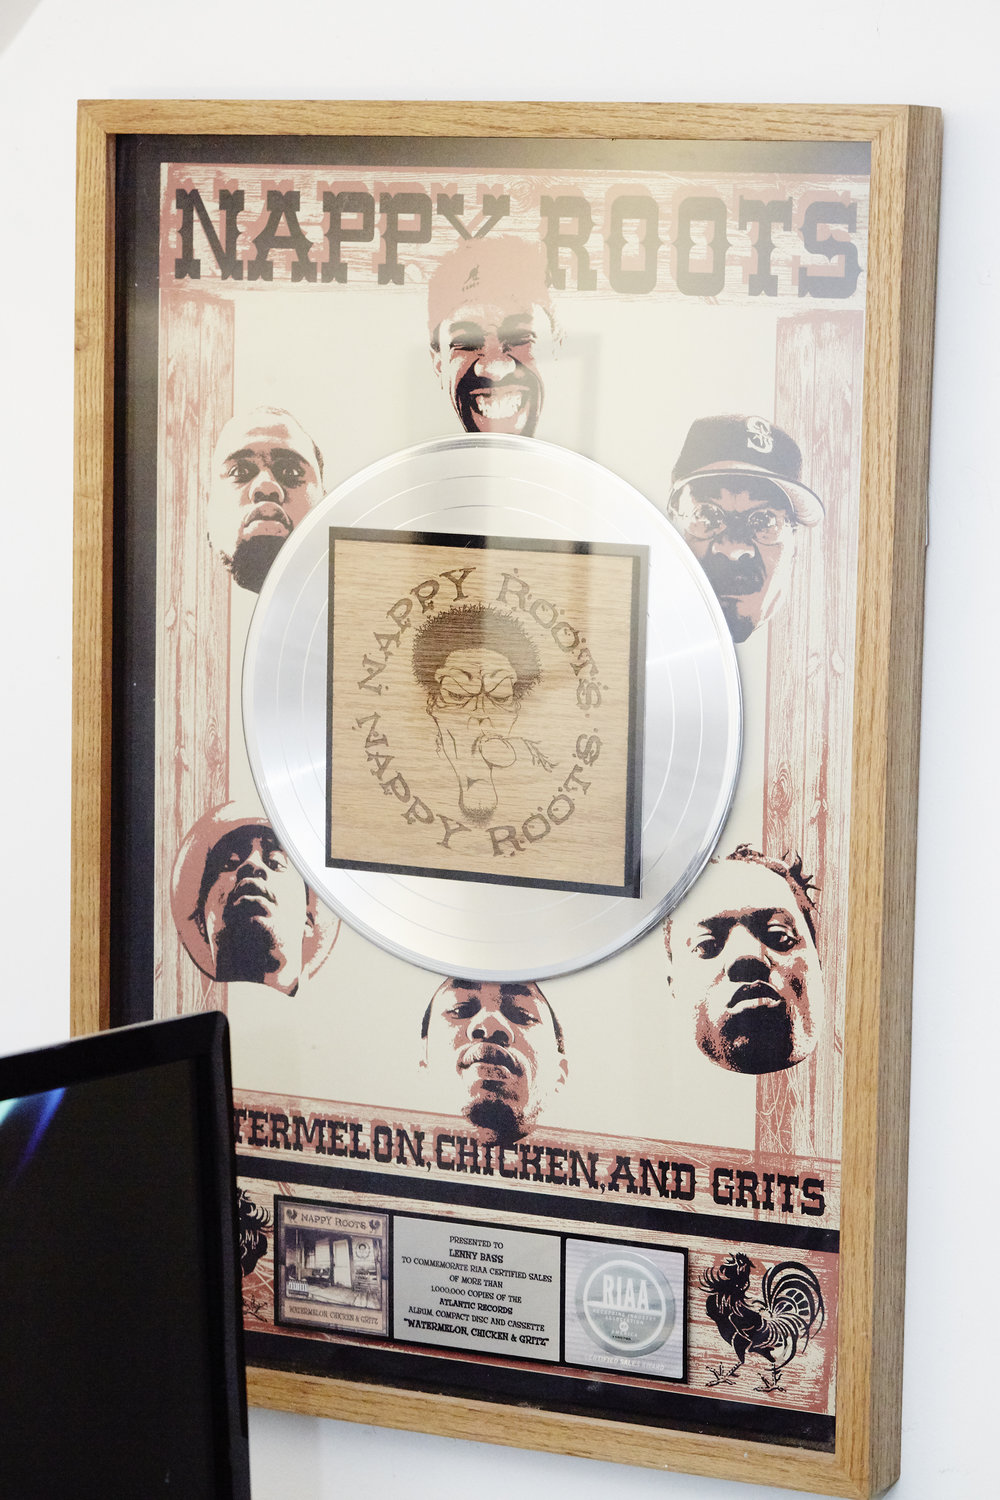 Lenny's Platinum Plaque for Nappy Roots' Watermelon, Chicken and Grits